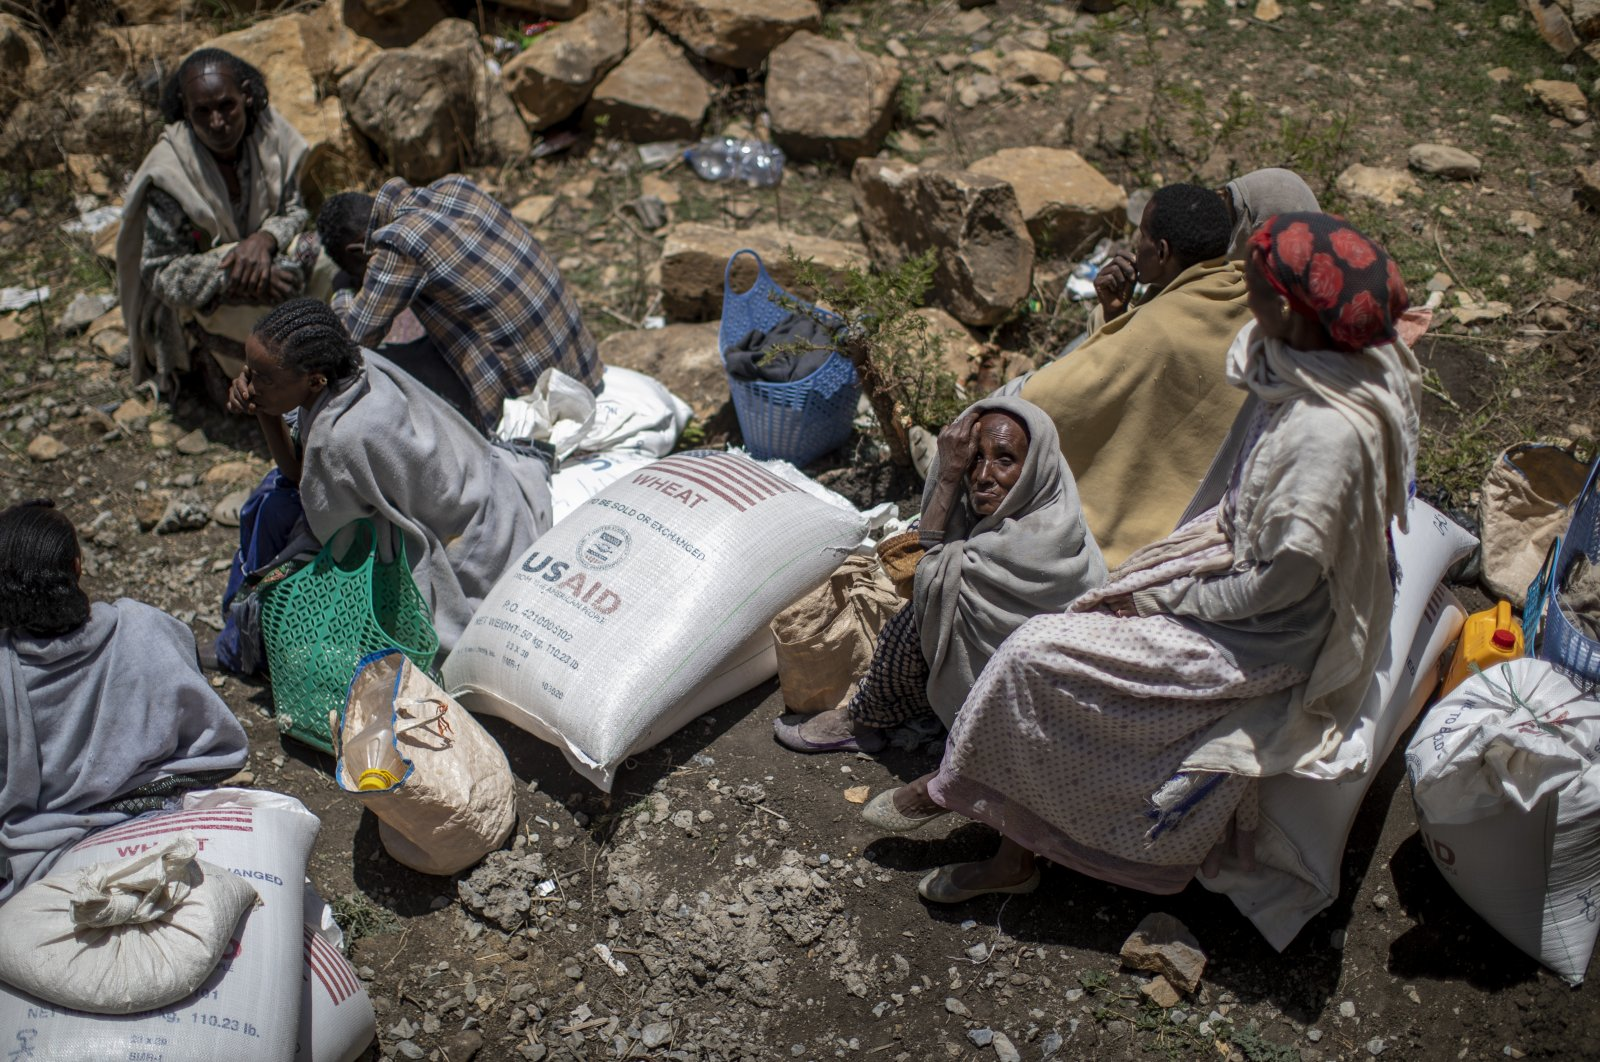 An elderly Ethiopian woman sits next to a sack of wheat after it was distributed to her by the Relief Society of Tigray in the town of Agula, in the Tigray region of northern Ethiopia, May 8, 2021. (AP Photo)